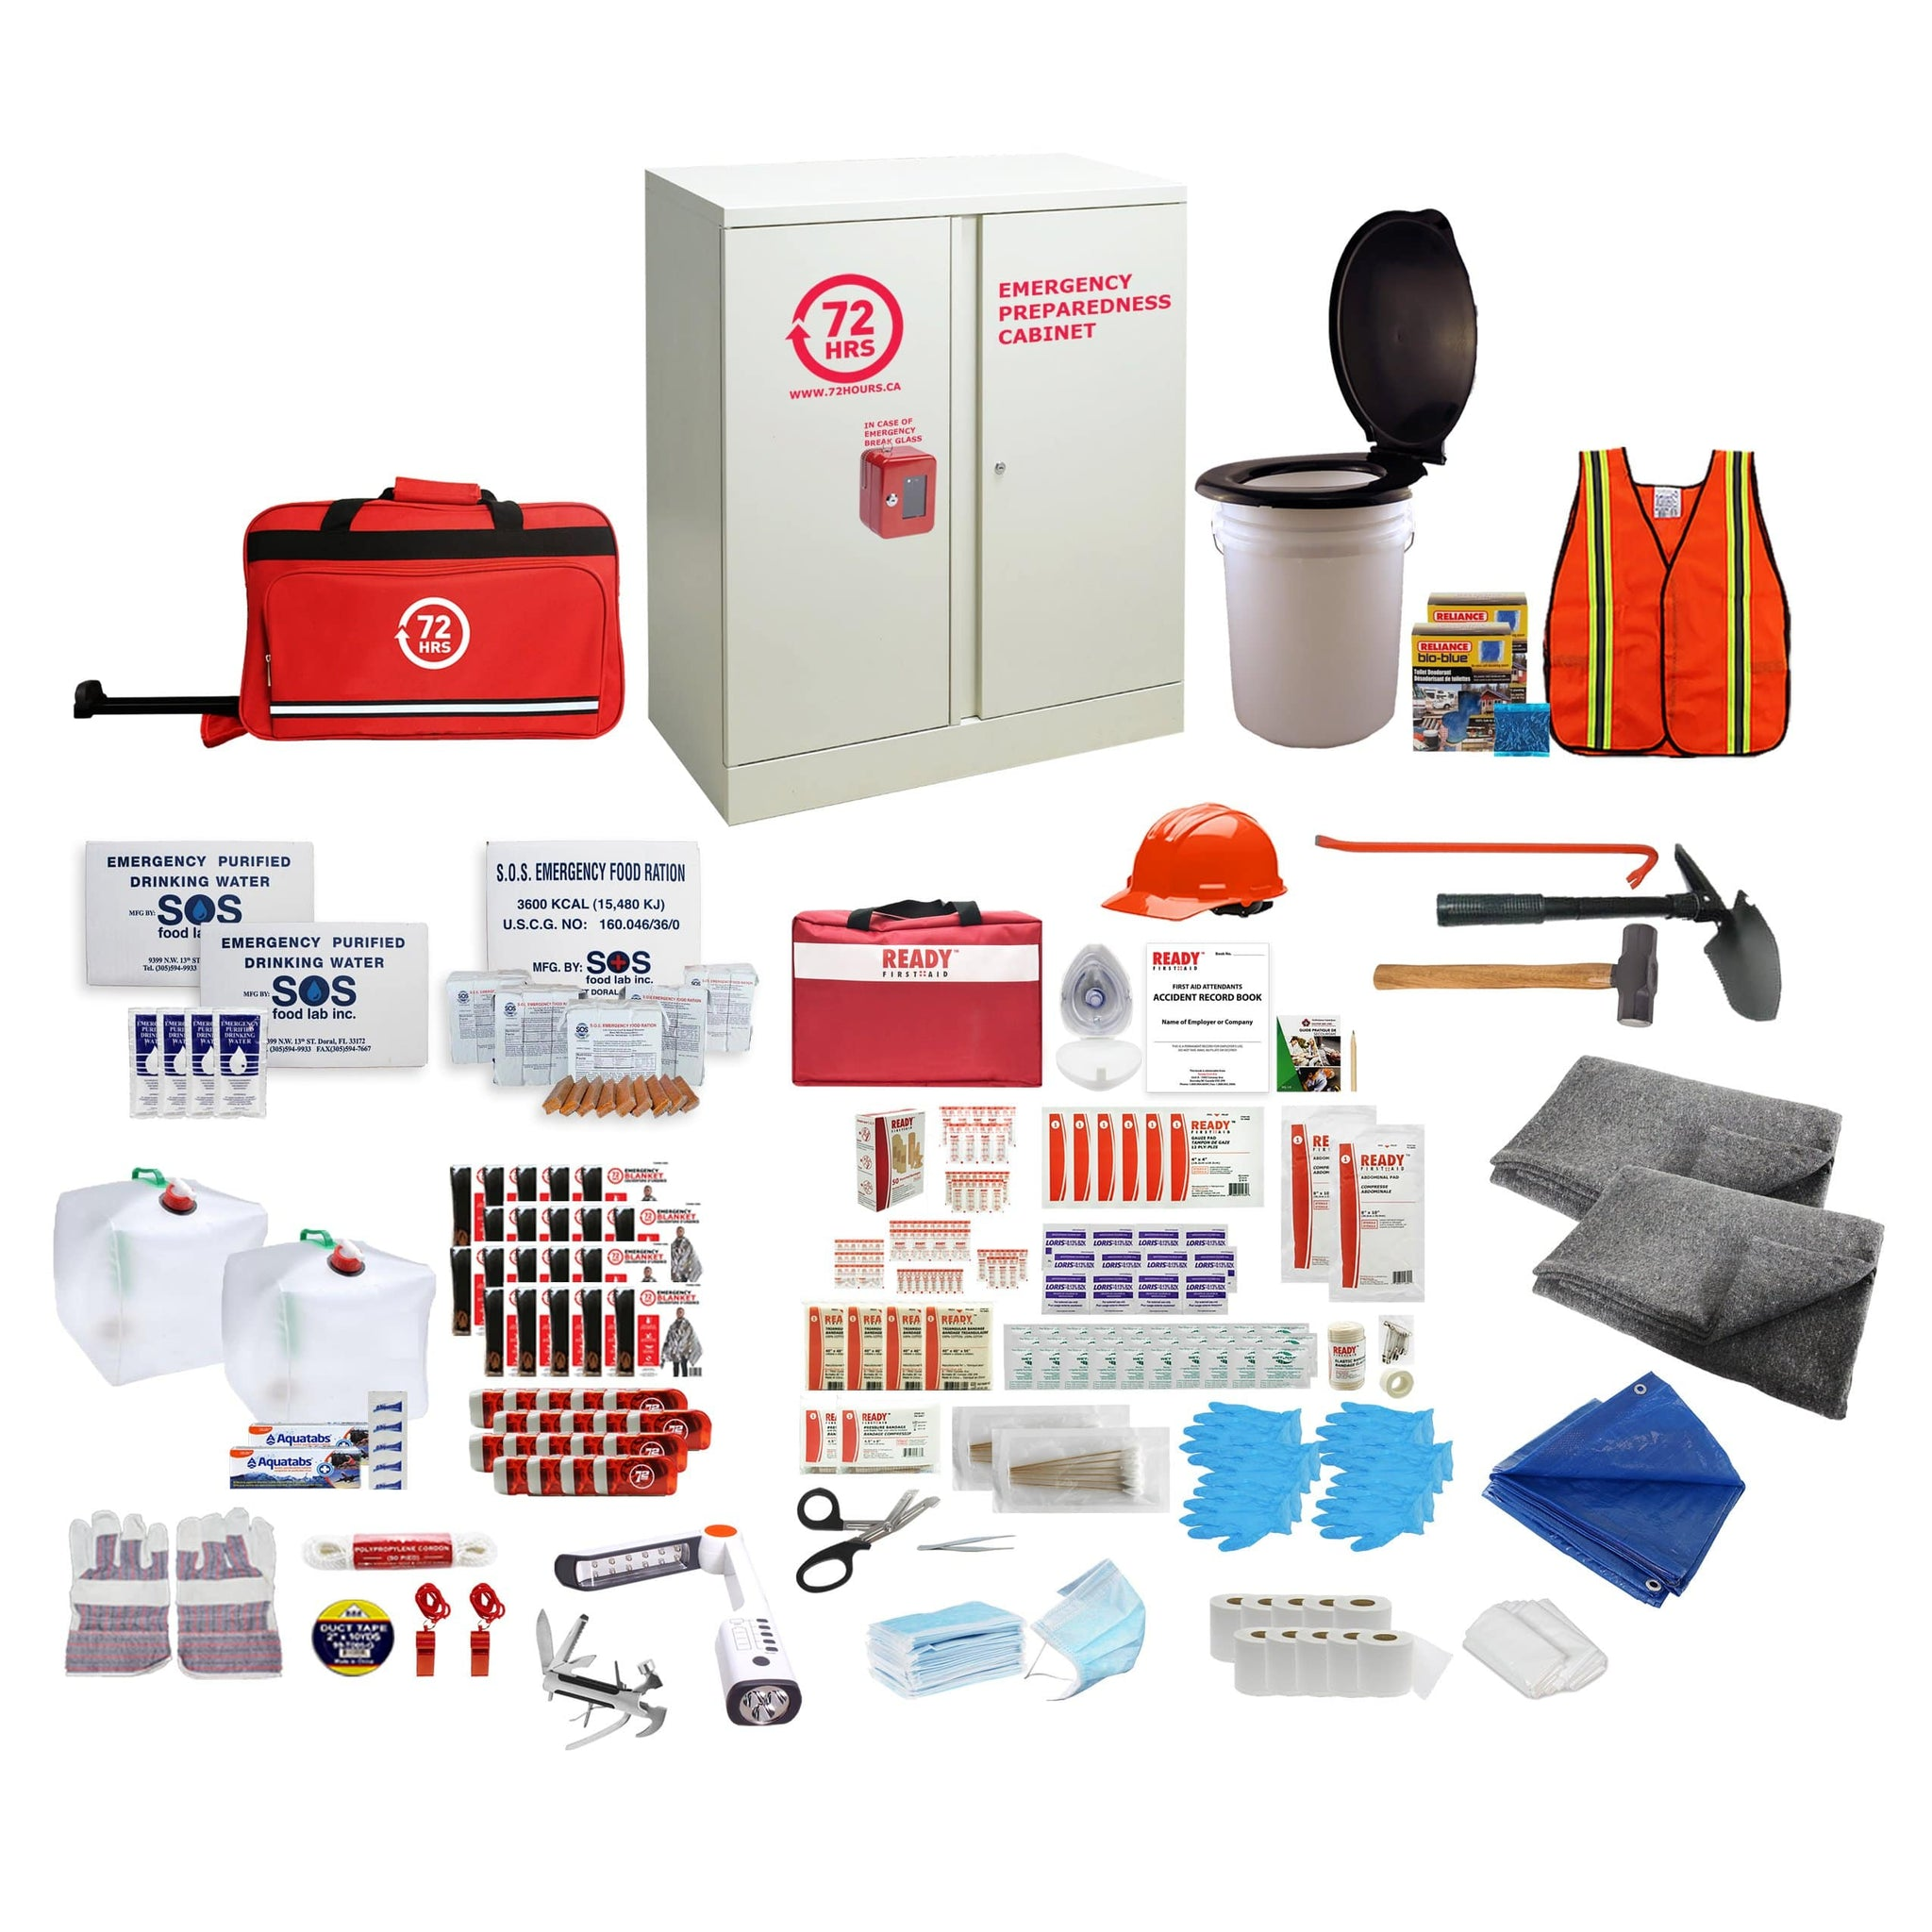 72HRS 20 people emergency cabinet kit with contents laid ouside of cabinet